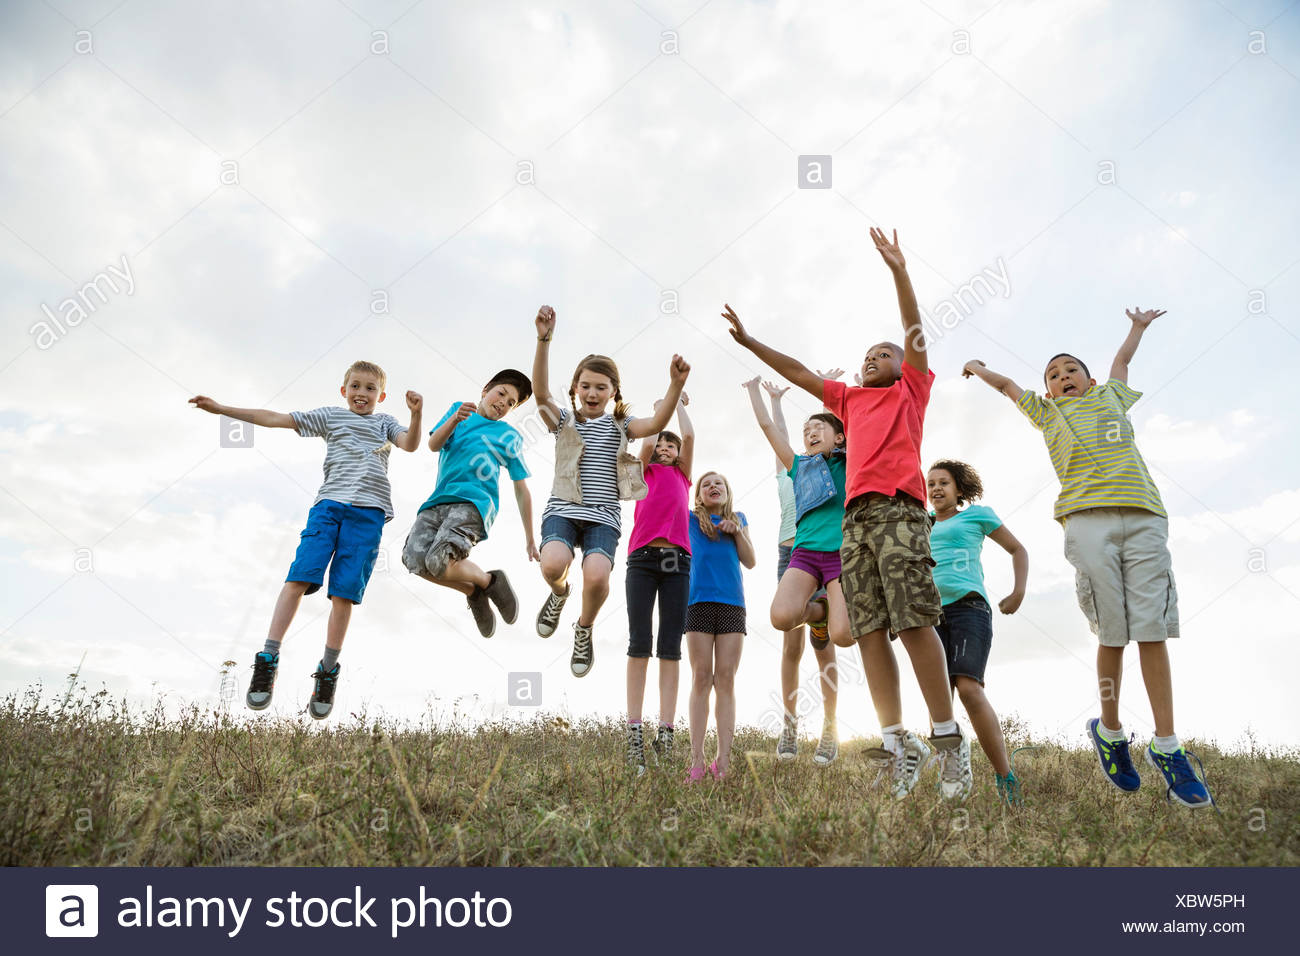 79471275dbfd1 Group Of Five Happy Children Jumping Outdoors Photos